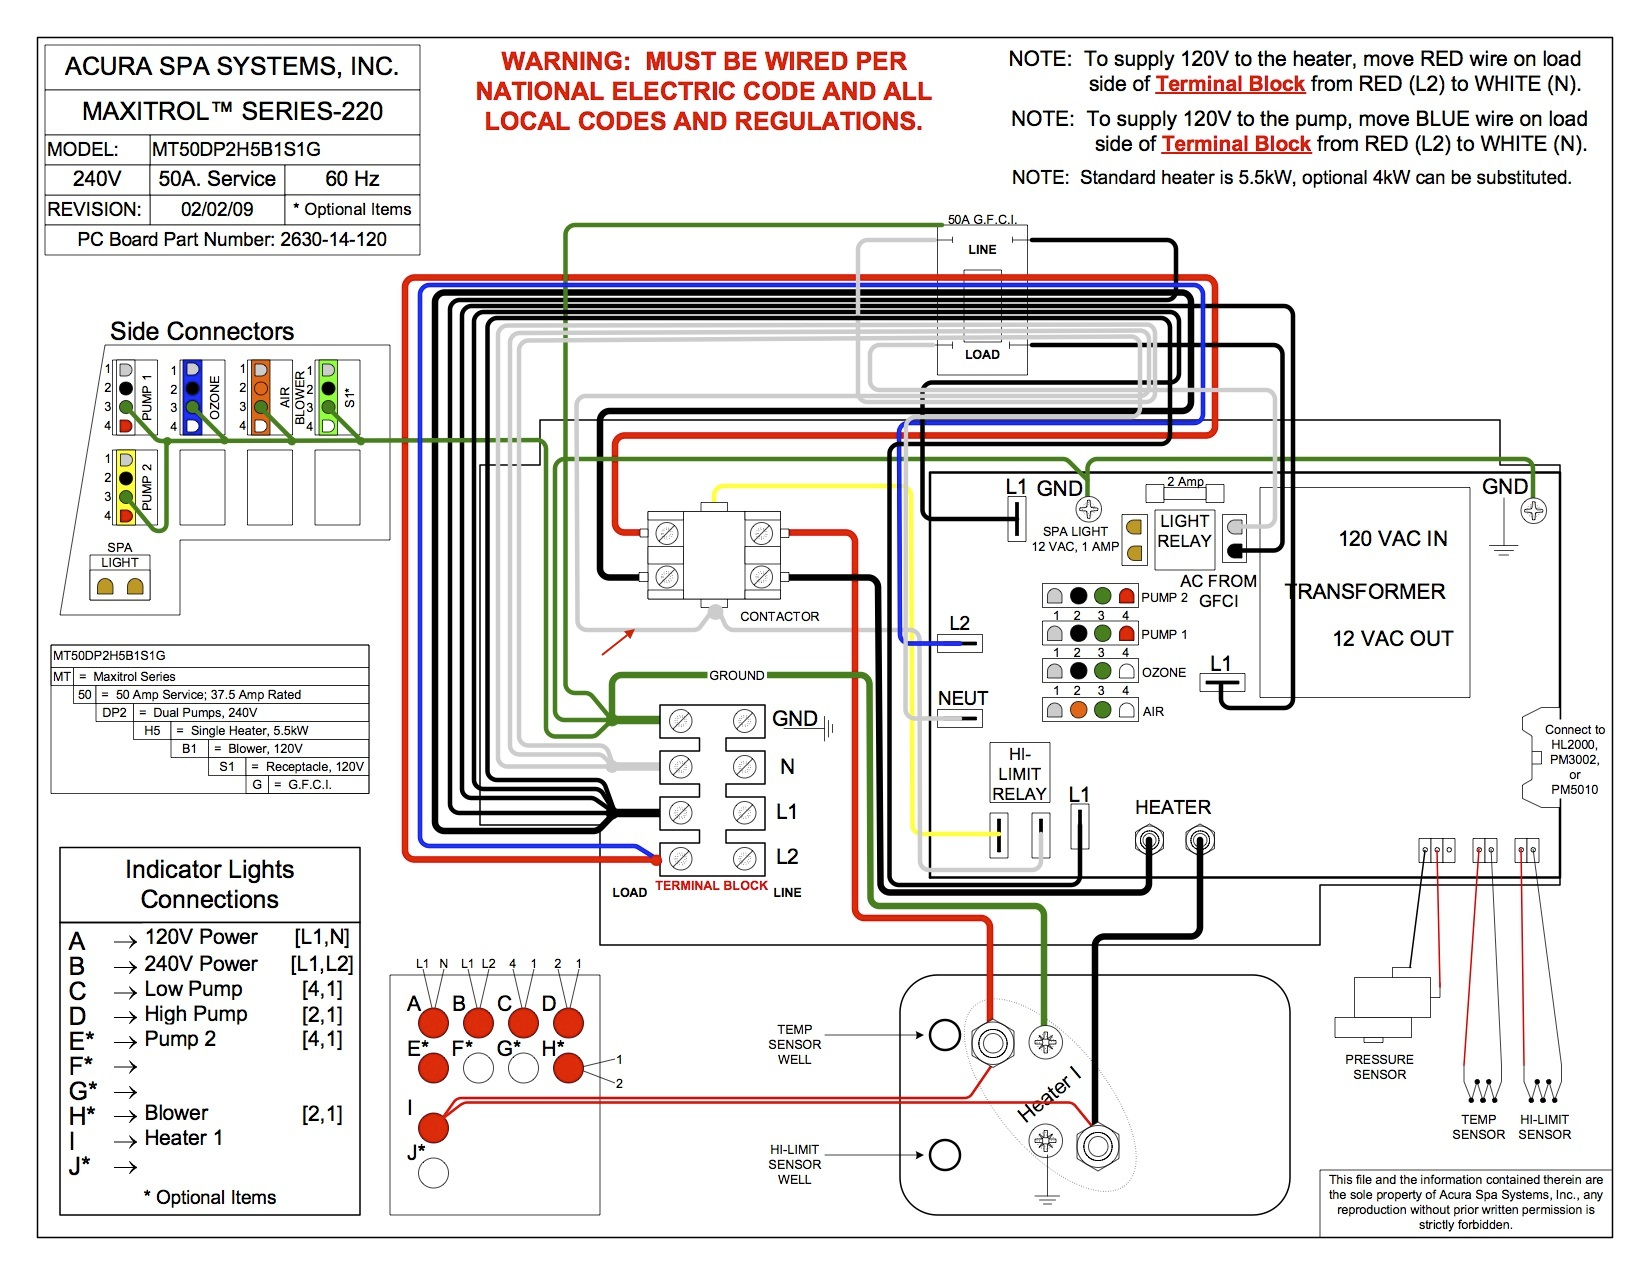 Ps4 Wiring Diagram Schematics Jackson Acura Spa Systems About Console Megatrol Mt50dp2h5b1s1g